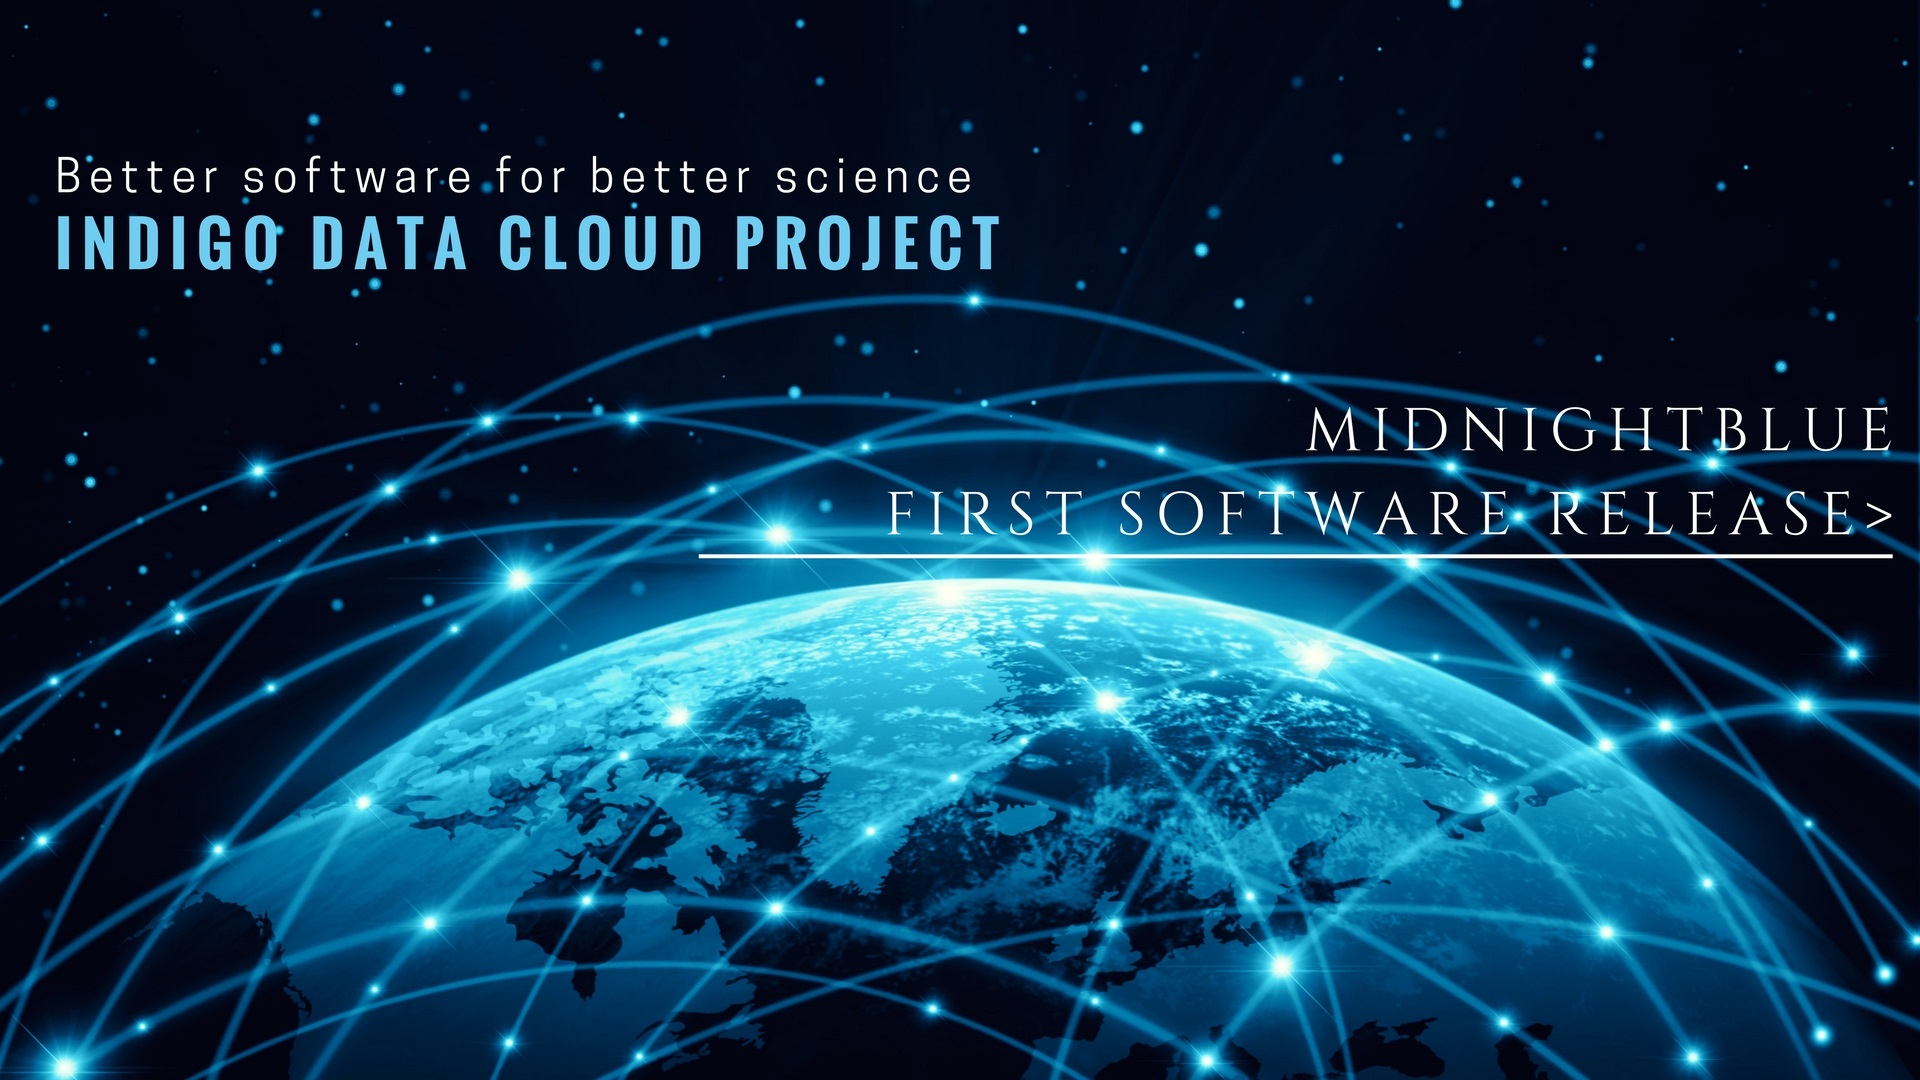 MIDNIGHTBLUE first Software release